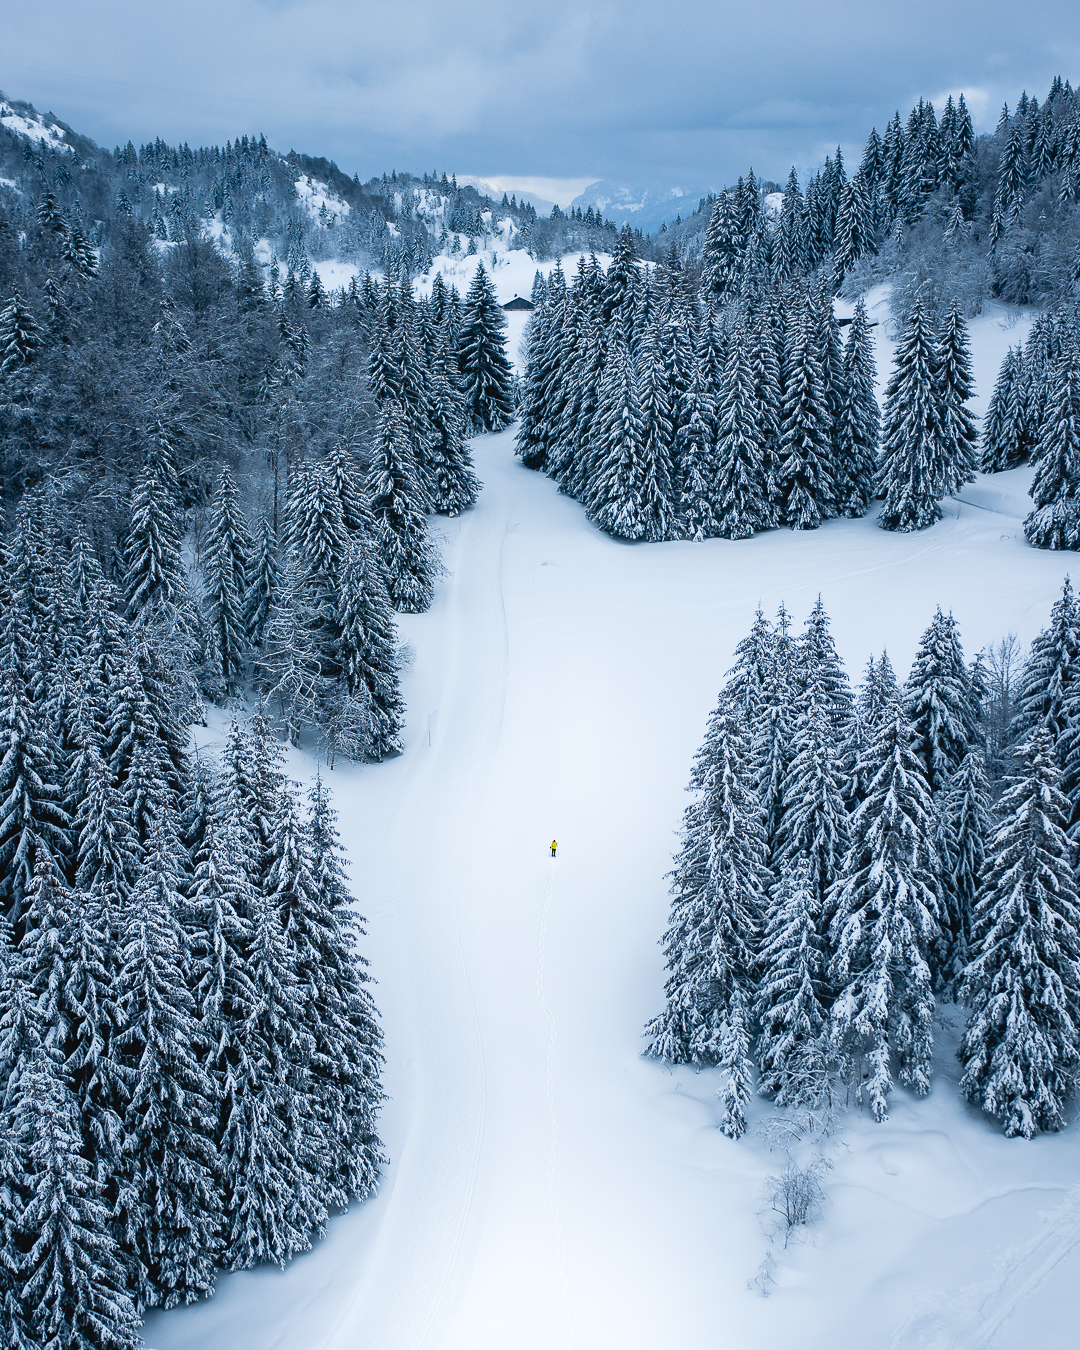 4 easy tips to take better drone photos in the snow and not freeze your fingers off